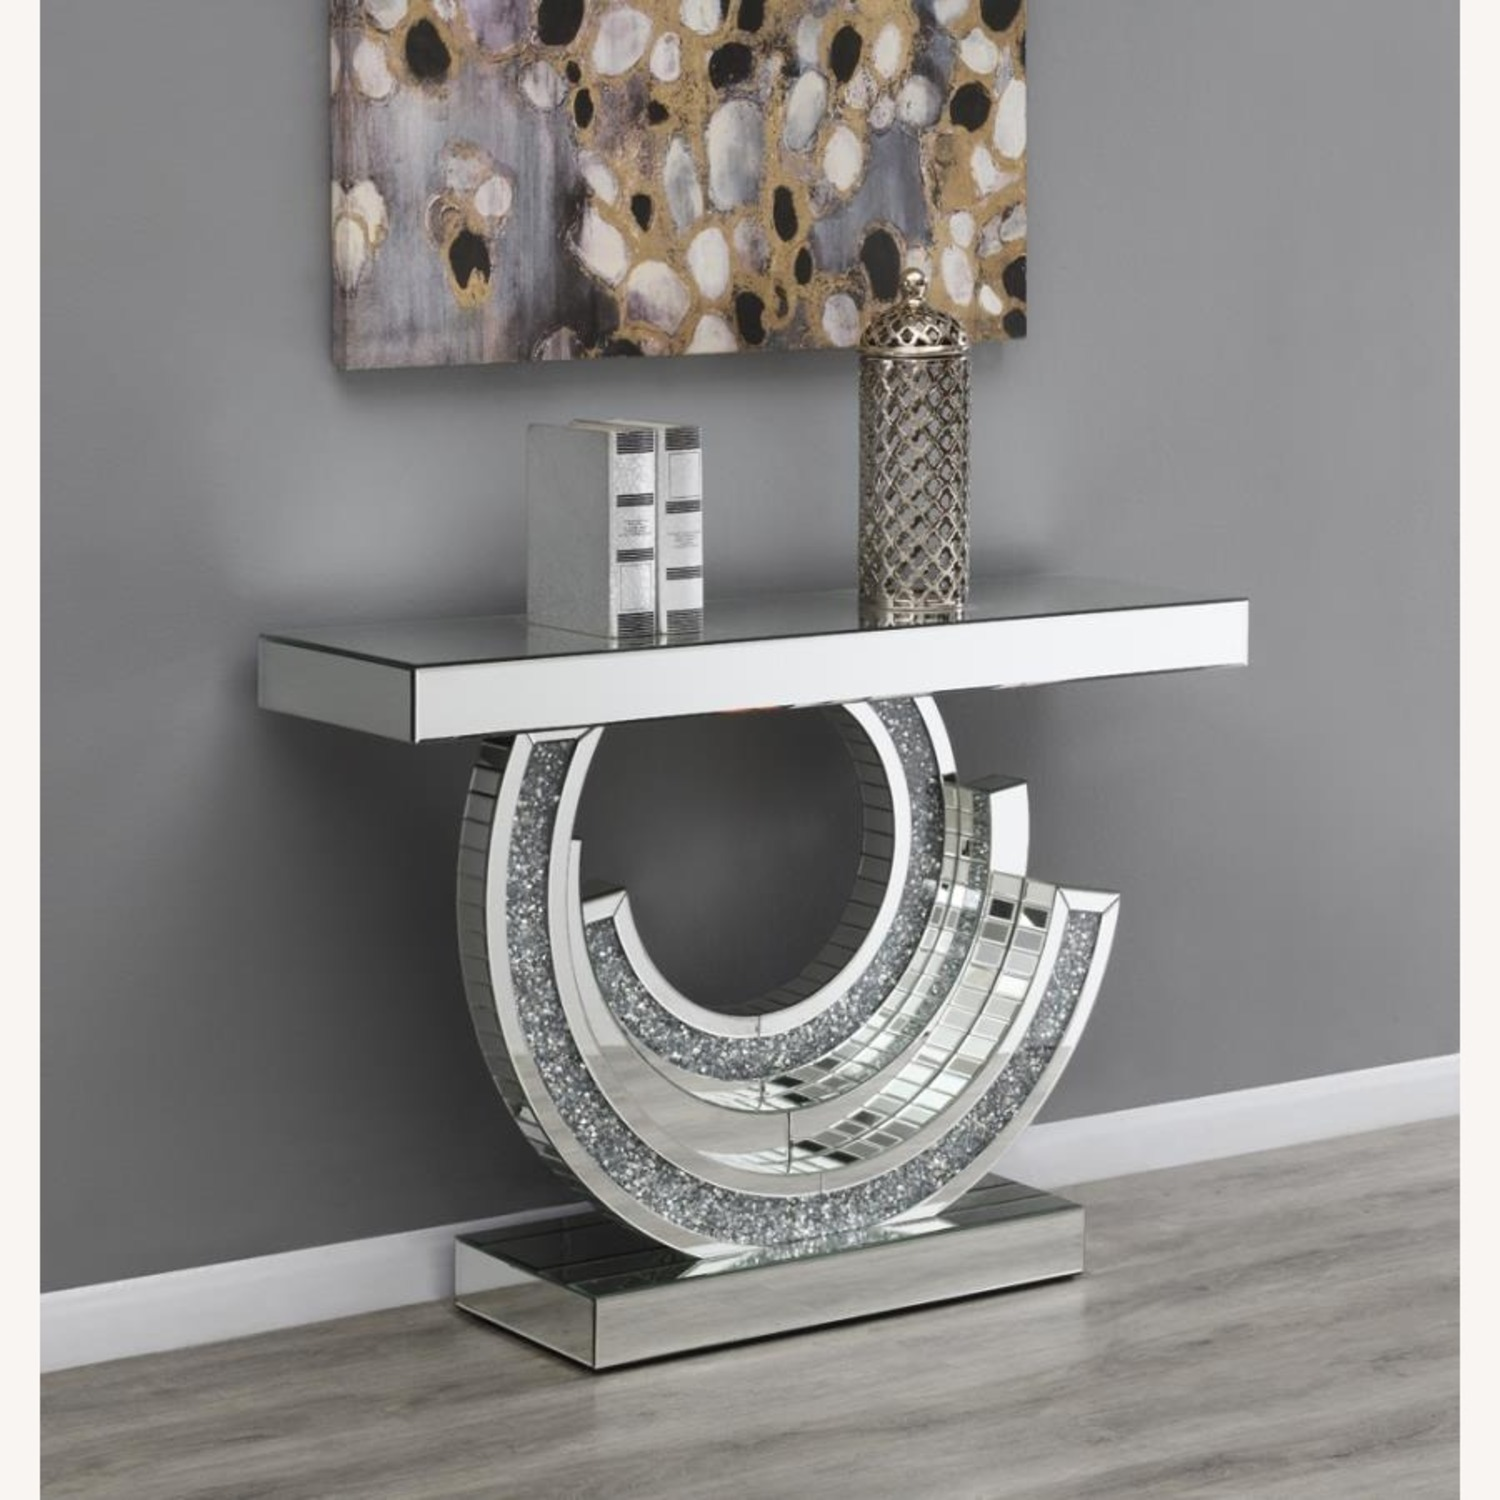 Console Table In Silver W/ Mirrored Table Top - image-2